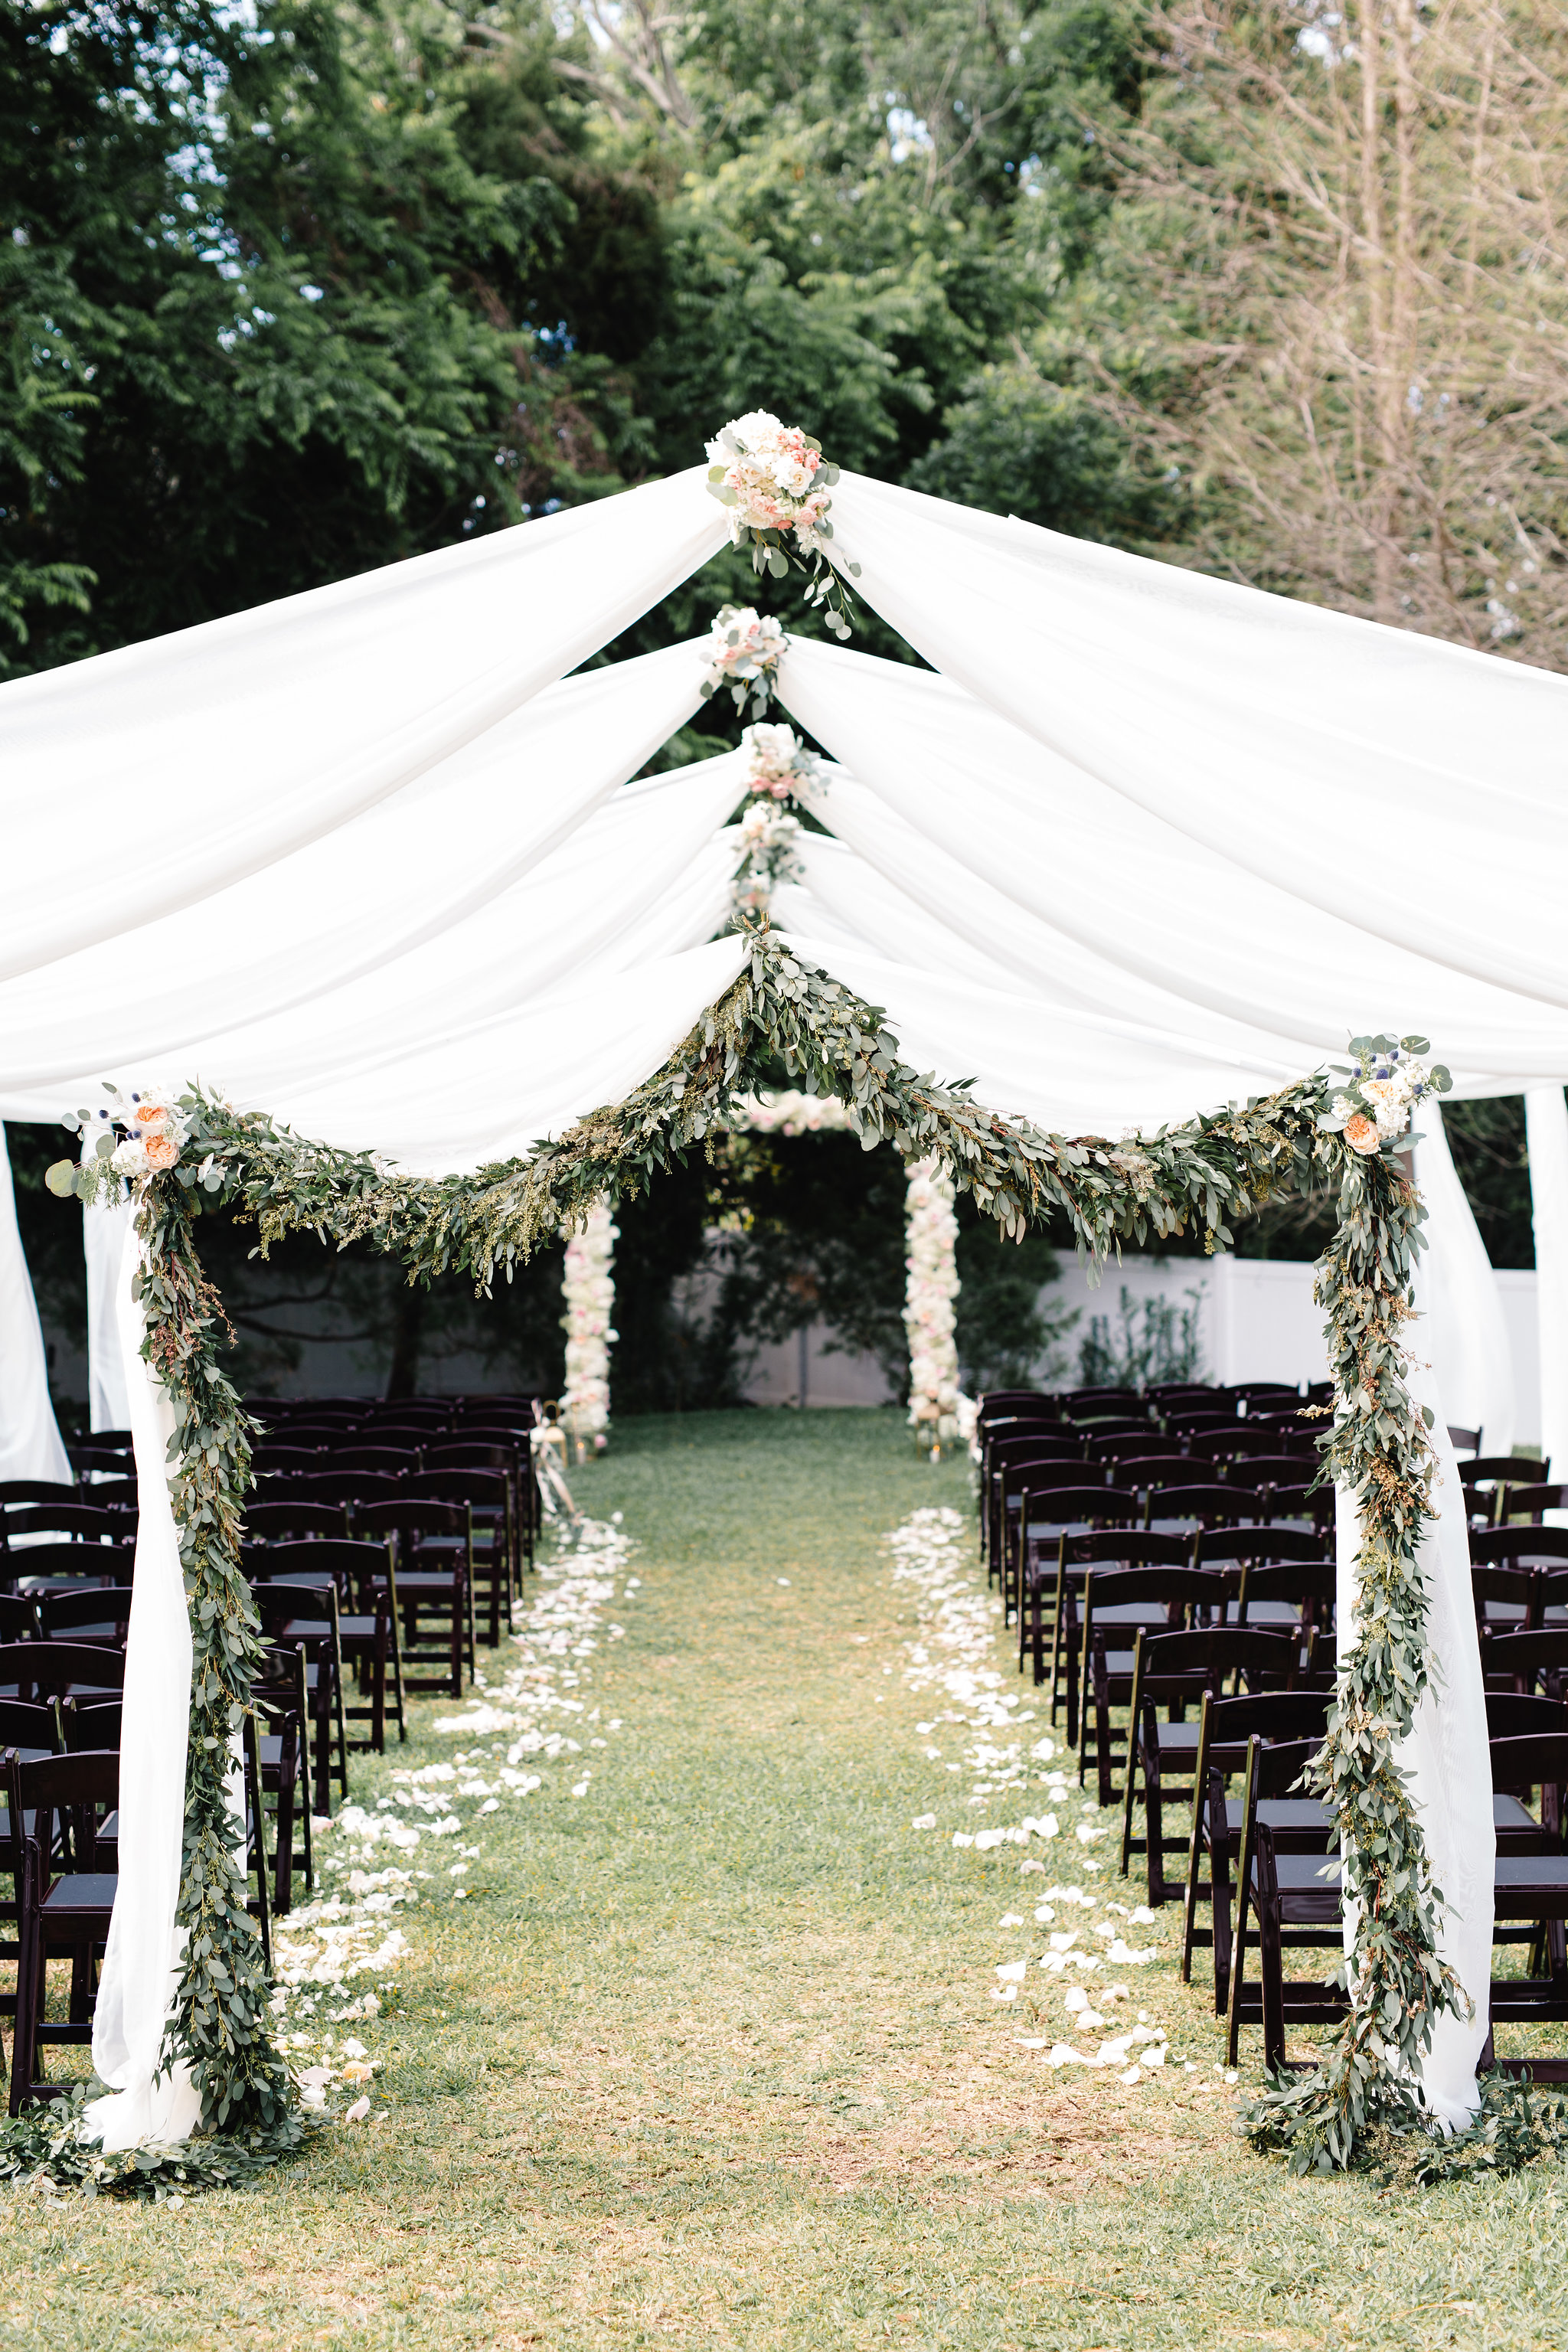 Arched ceremony draping with garland  Blush & White Garden wedding at Luxmore Grande Estate in Orlando, Florida  Orlando Wedding Planner Blue Ribbon Weddings  Orlando Wedding Photographer JP Pratt Photography  Wedding Ceremony & Reception at Luxmore Grande Estate